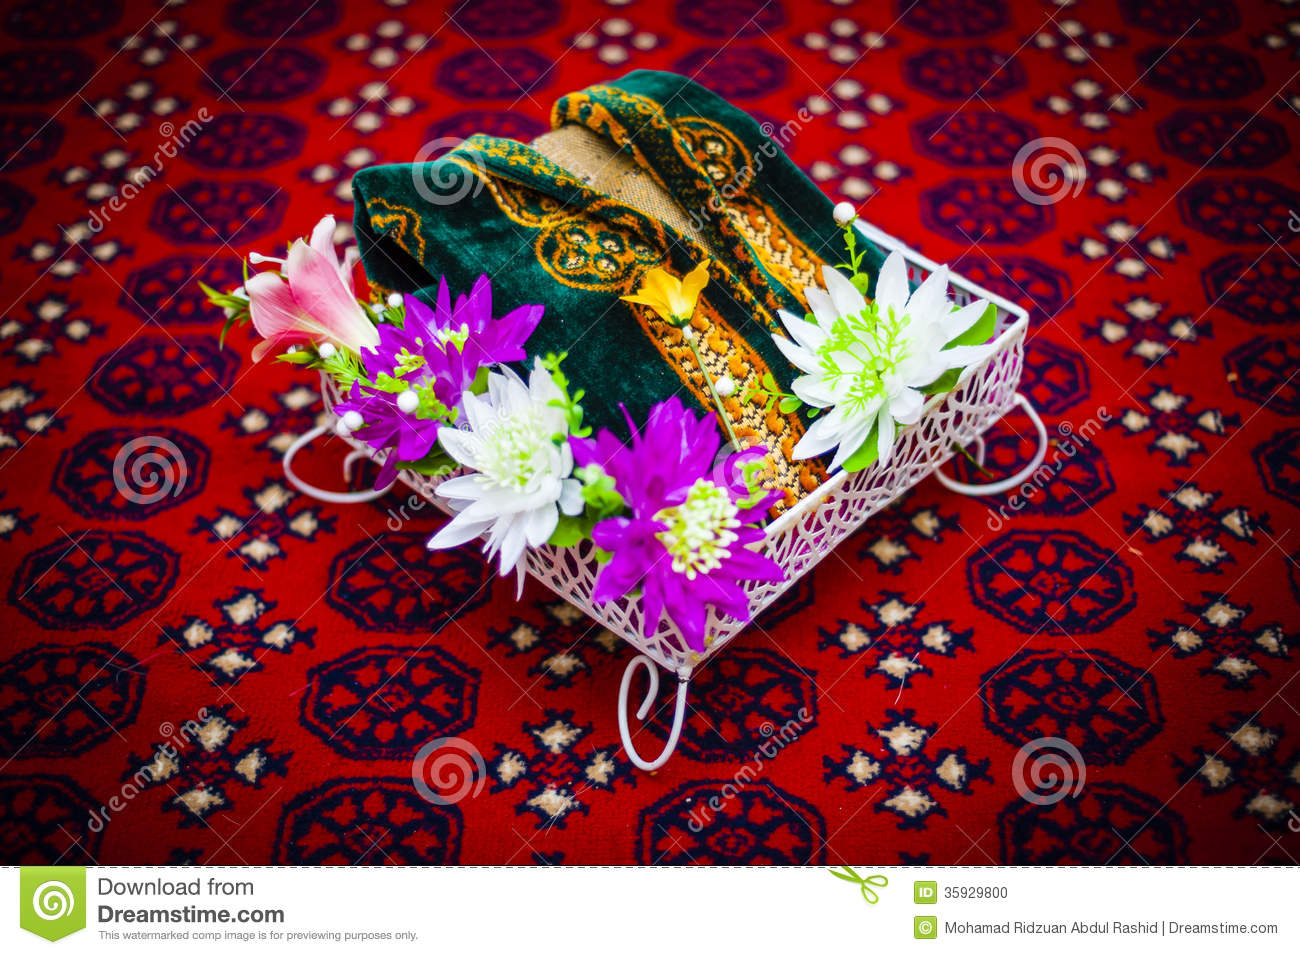 decorated wedding gift for exchange between the newly wedded couple.